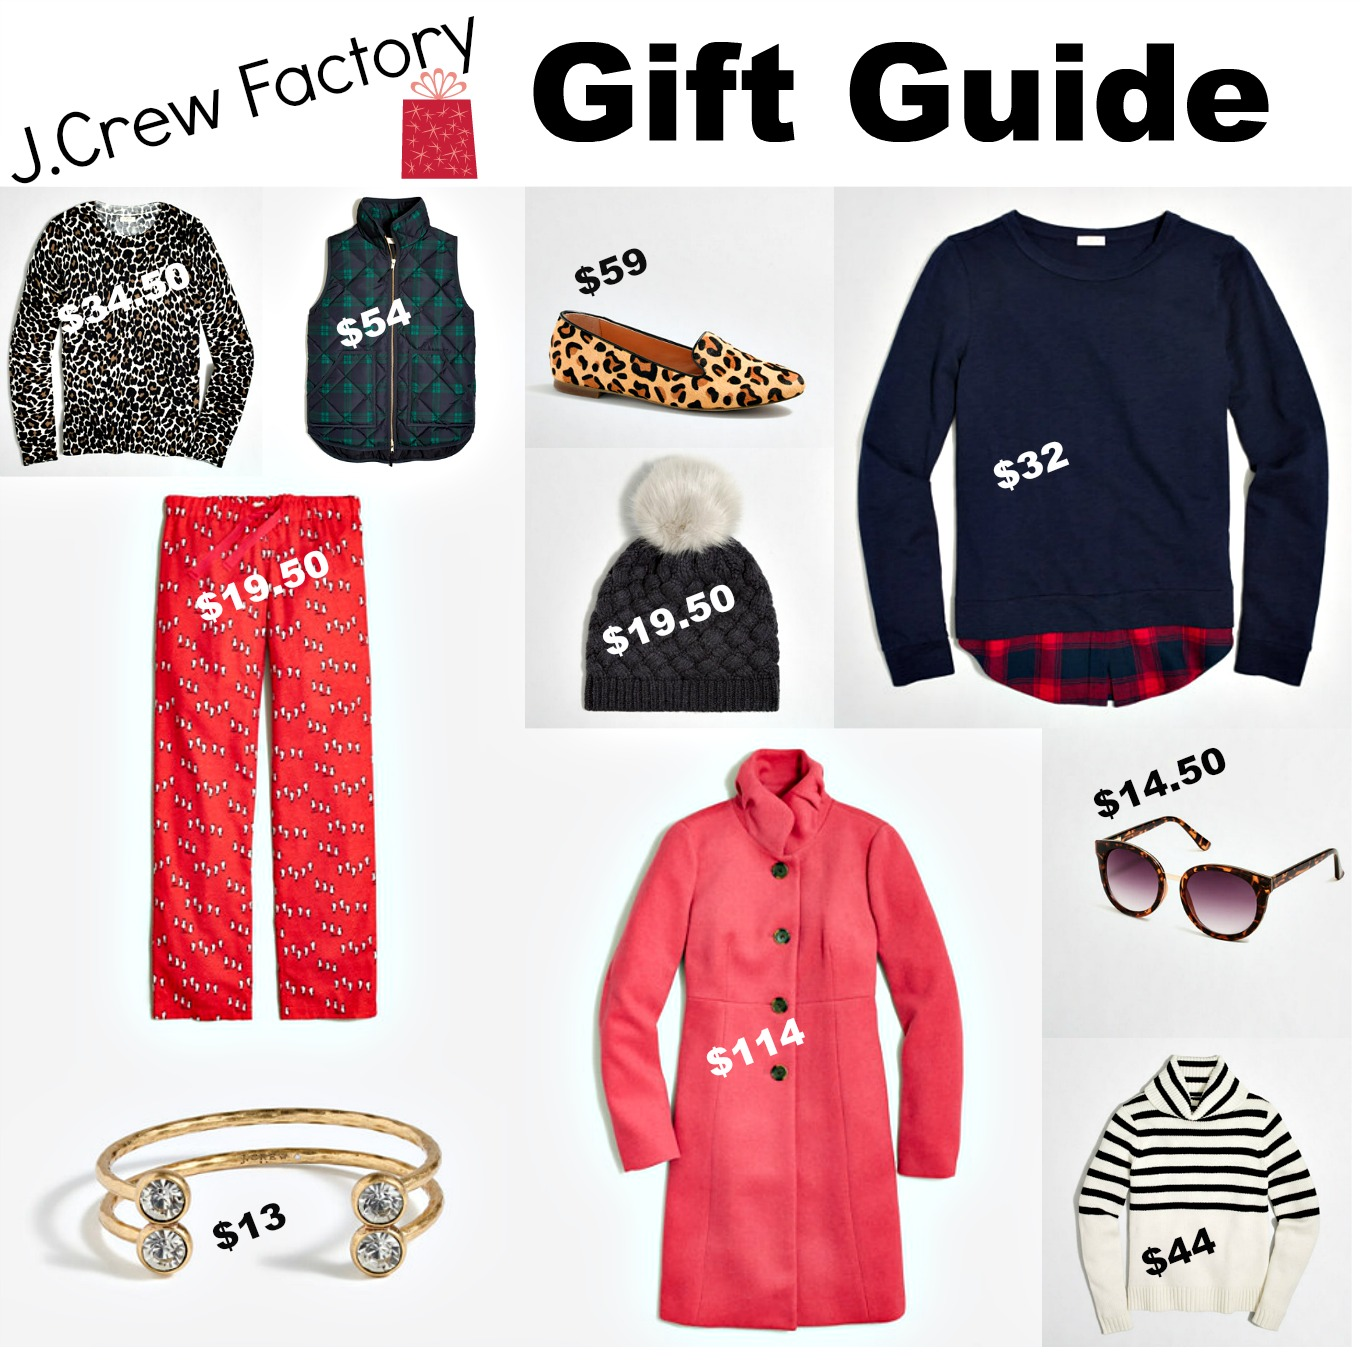 J.Crew Factory Gift Guide